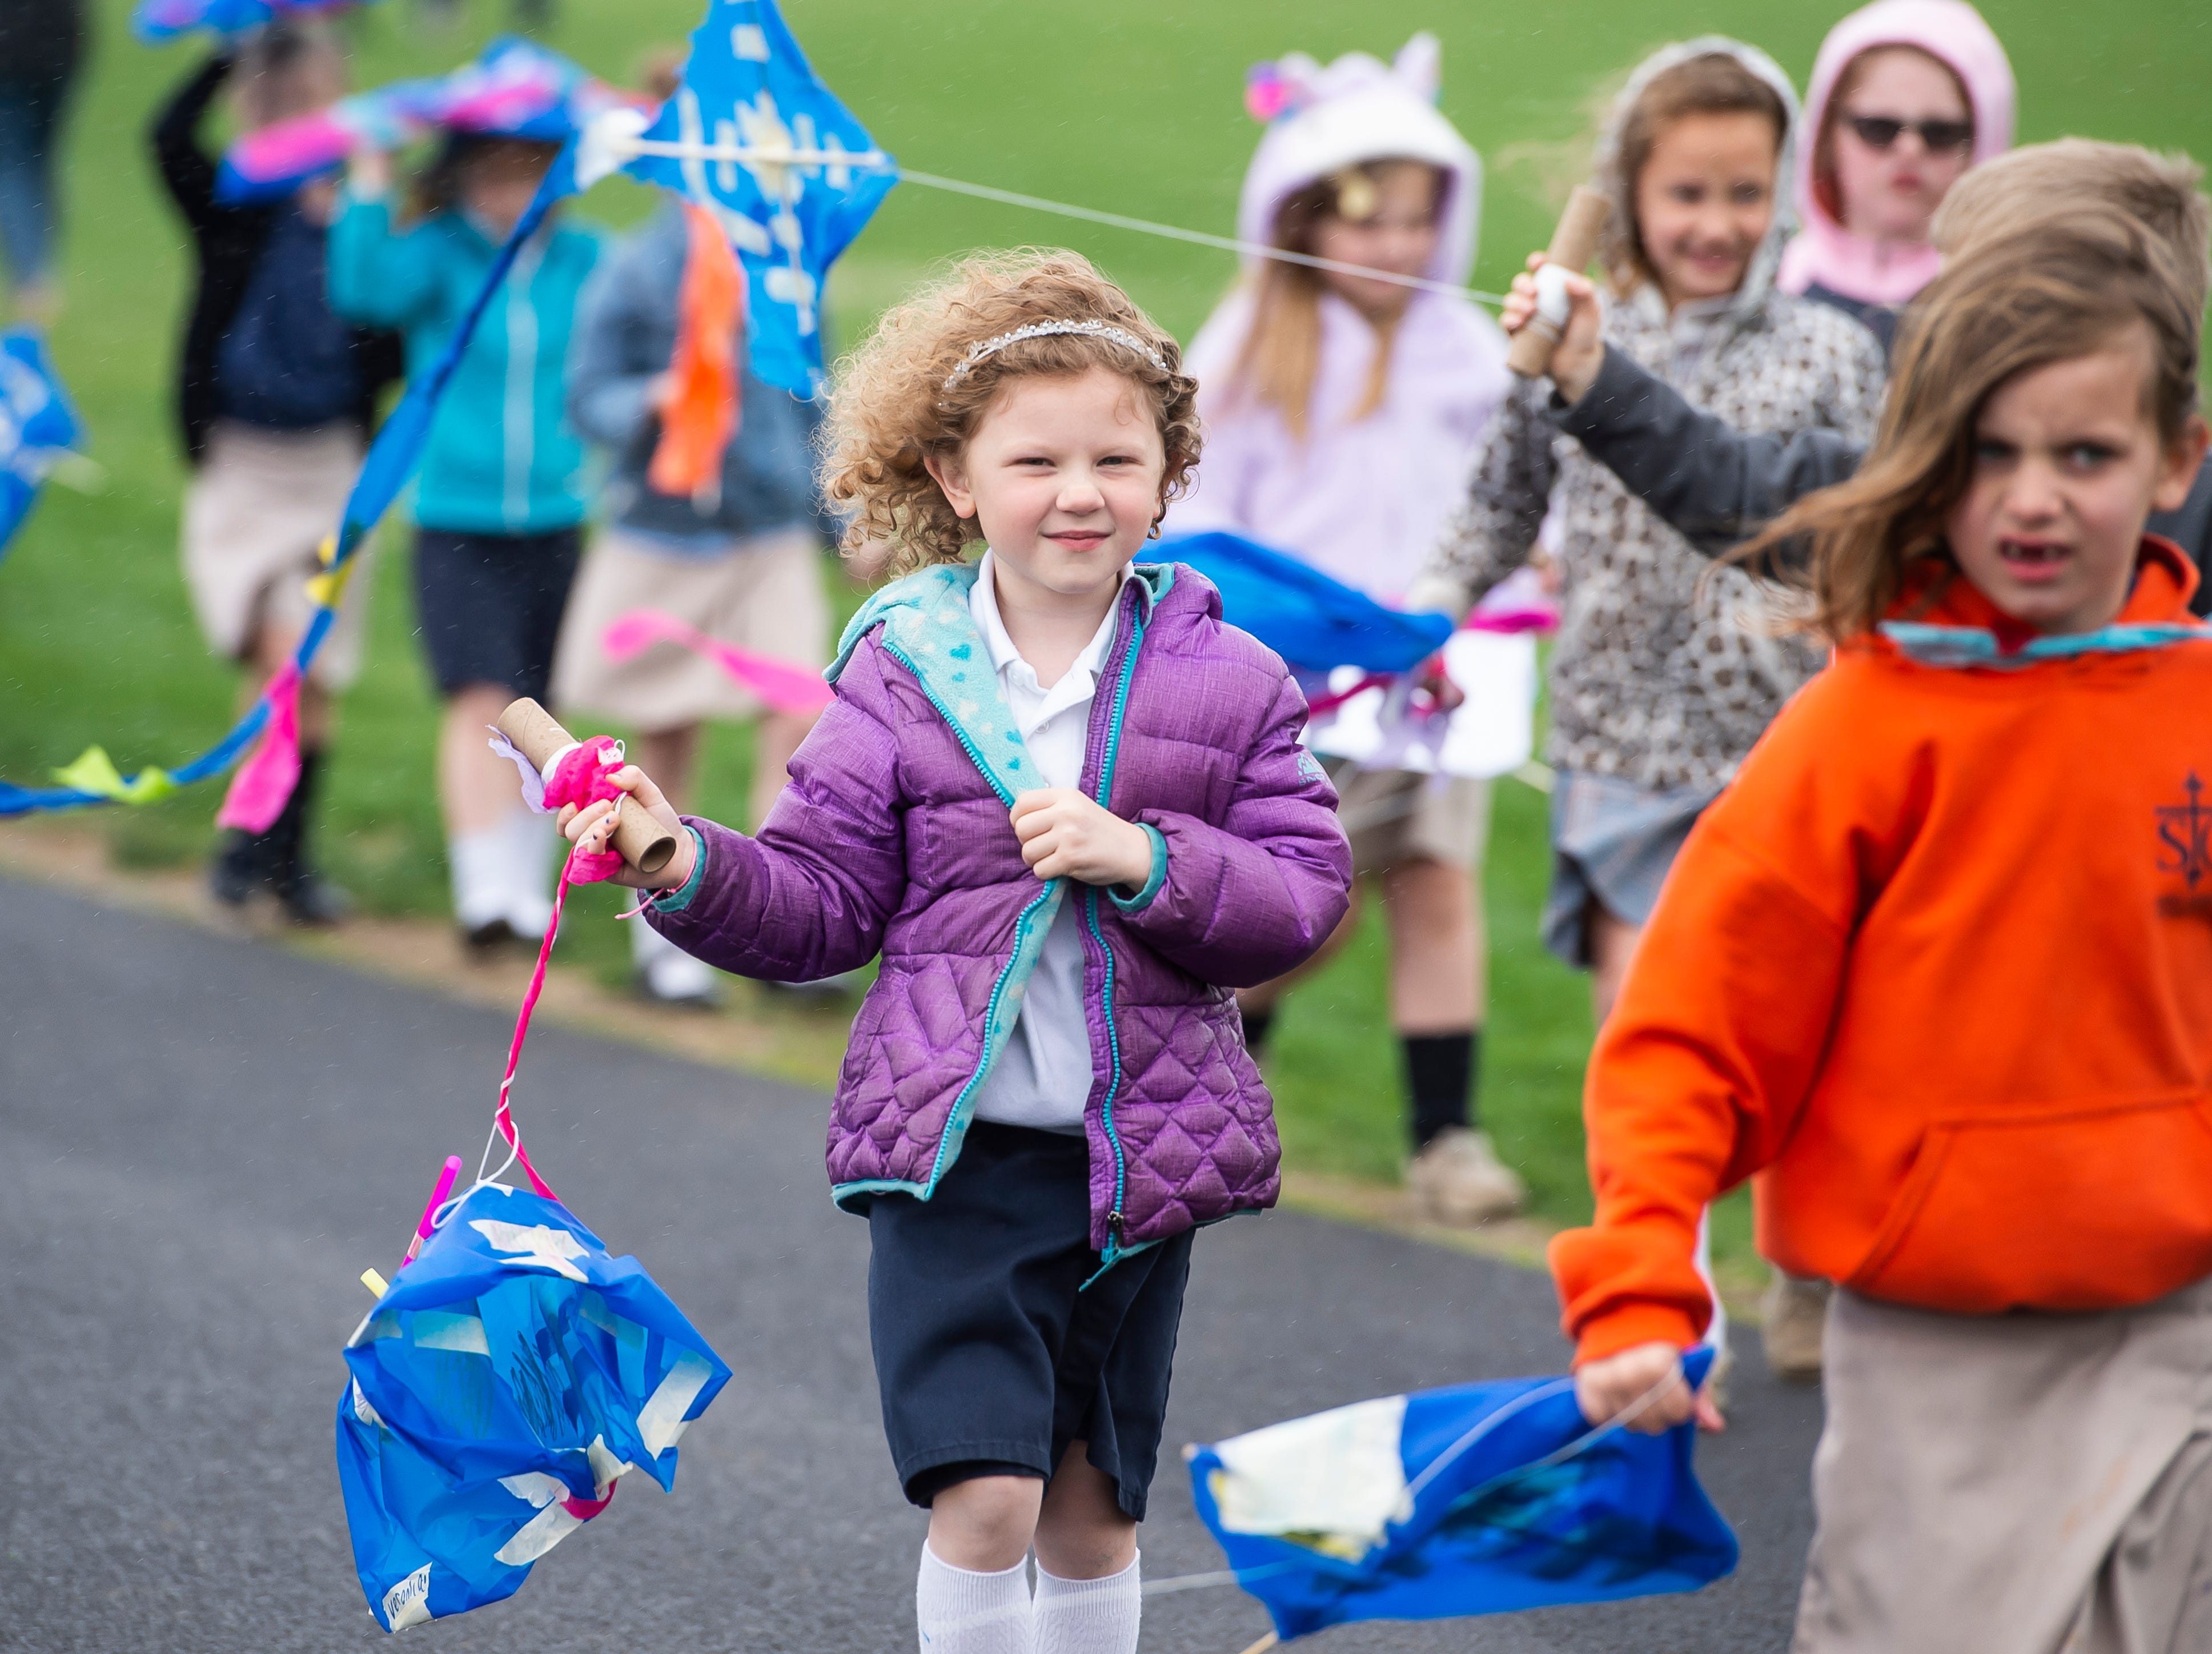 Students from St. Teresa of Calcutta Catholic School line up to head back inside after flying their homemade kites at the school's Conewago campus on Friday, April 12, 2019.